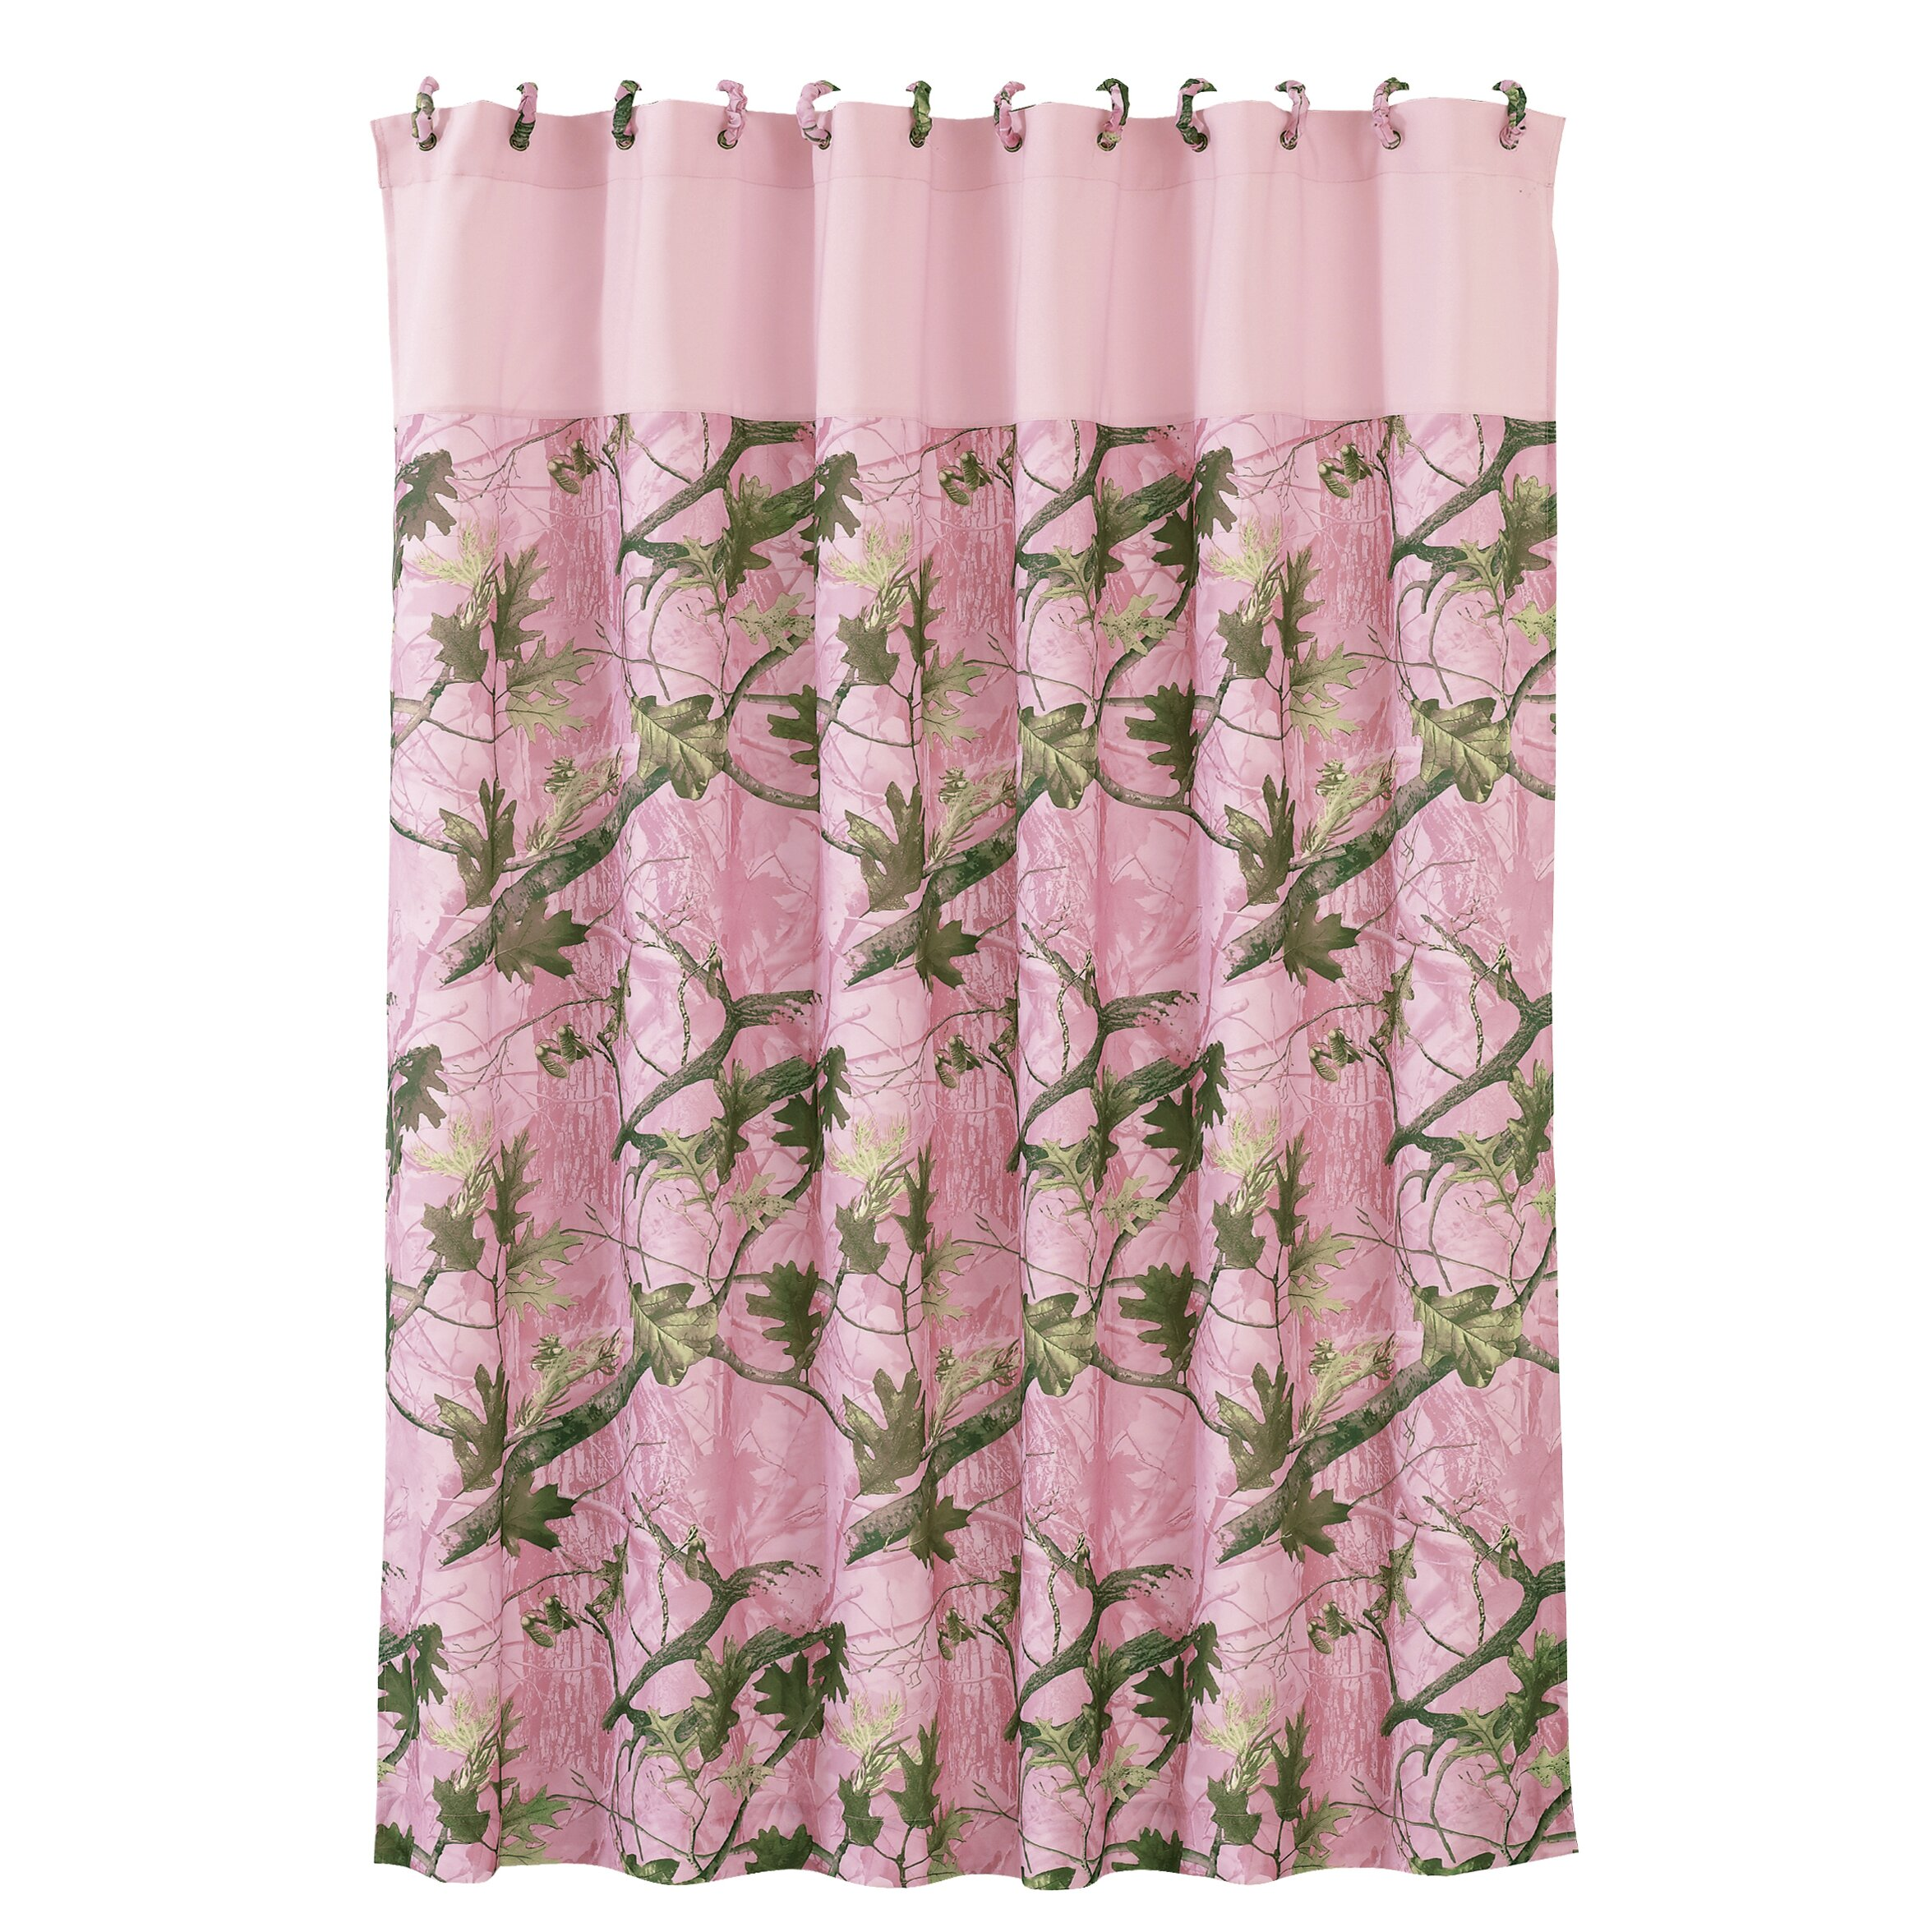 Hiend Accents Pink Oak Camo Polyester Shower Curtain